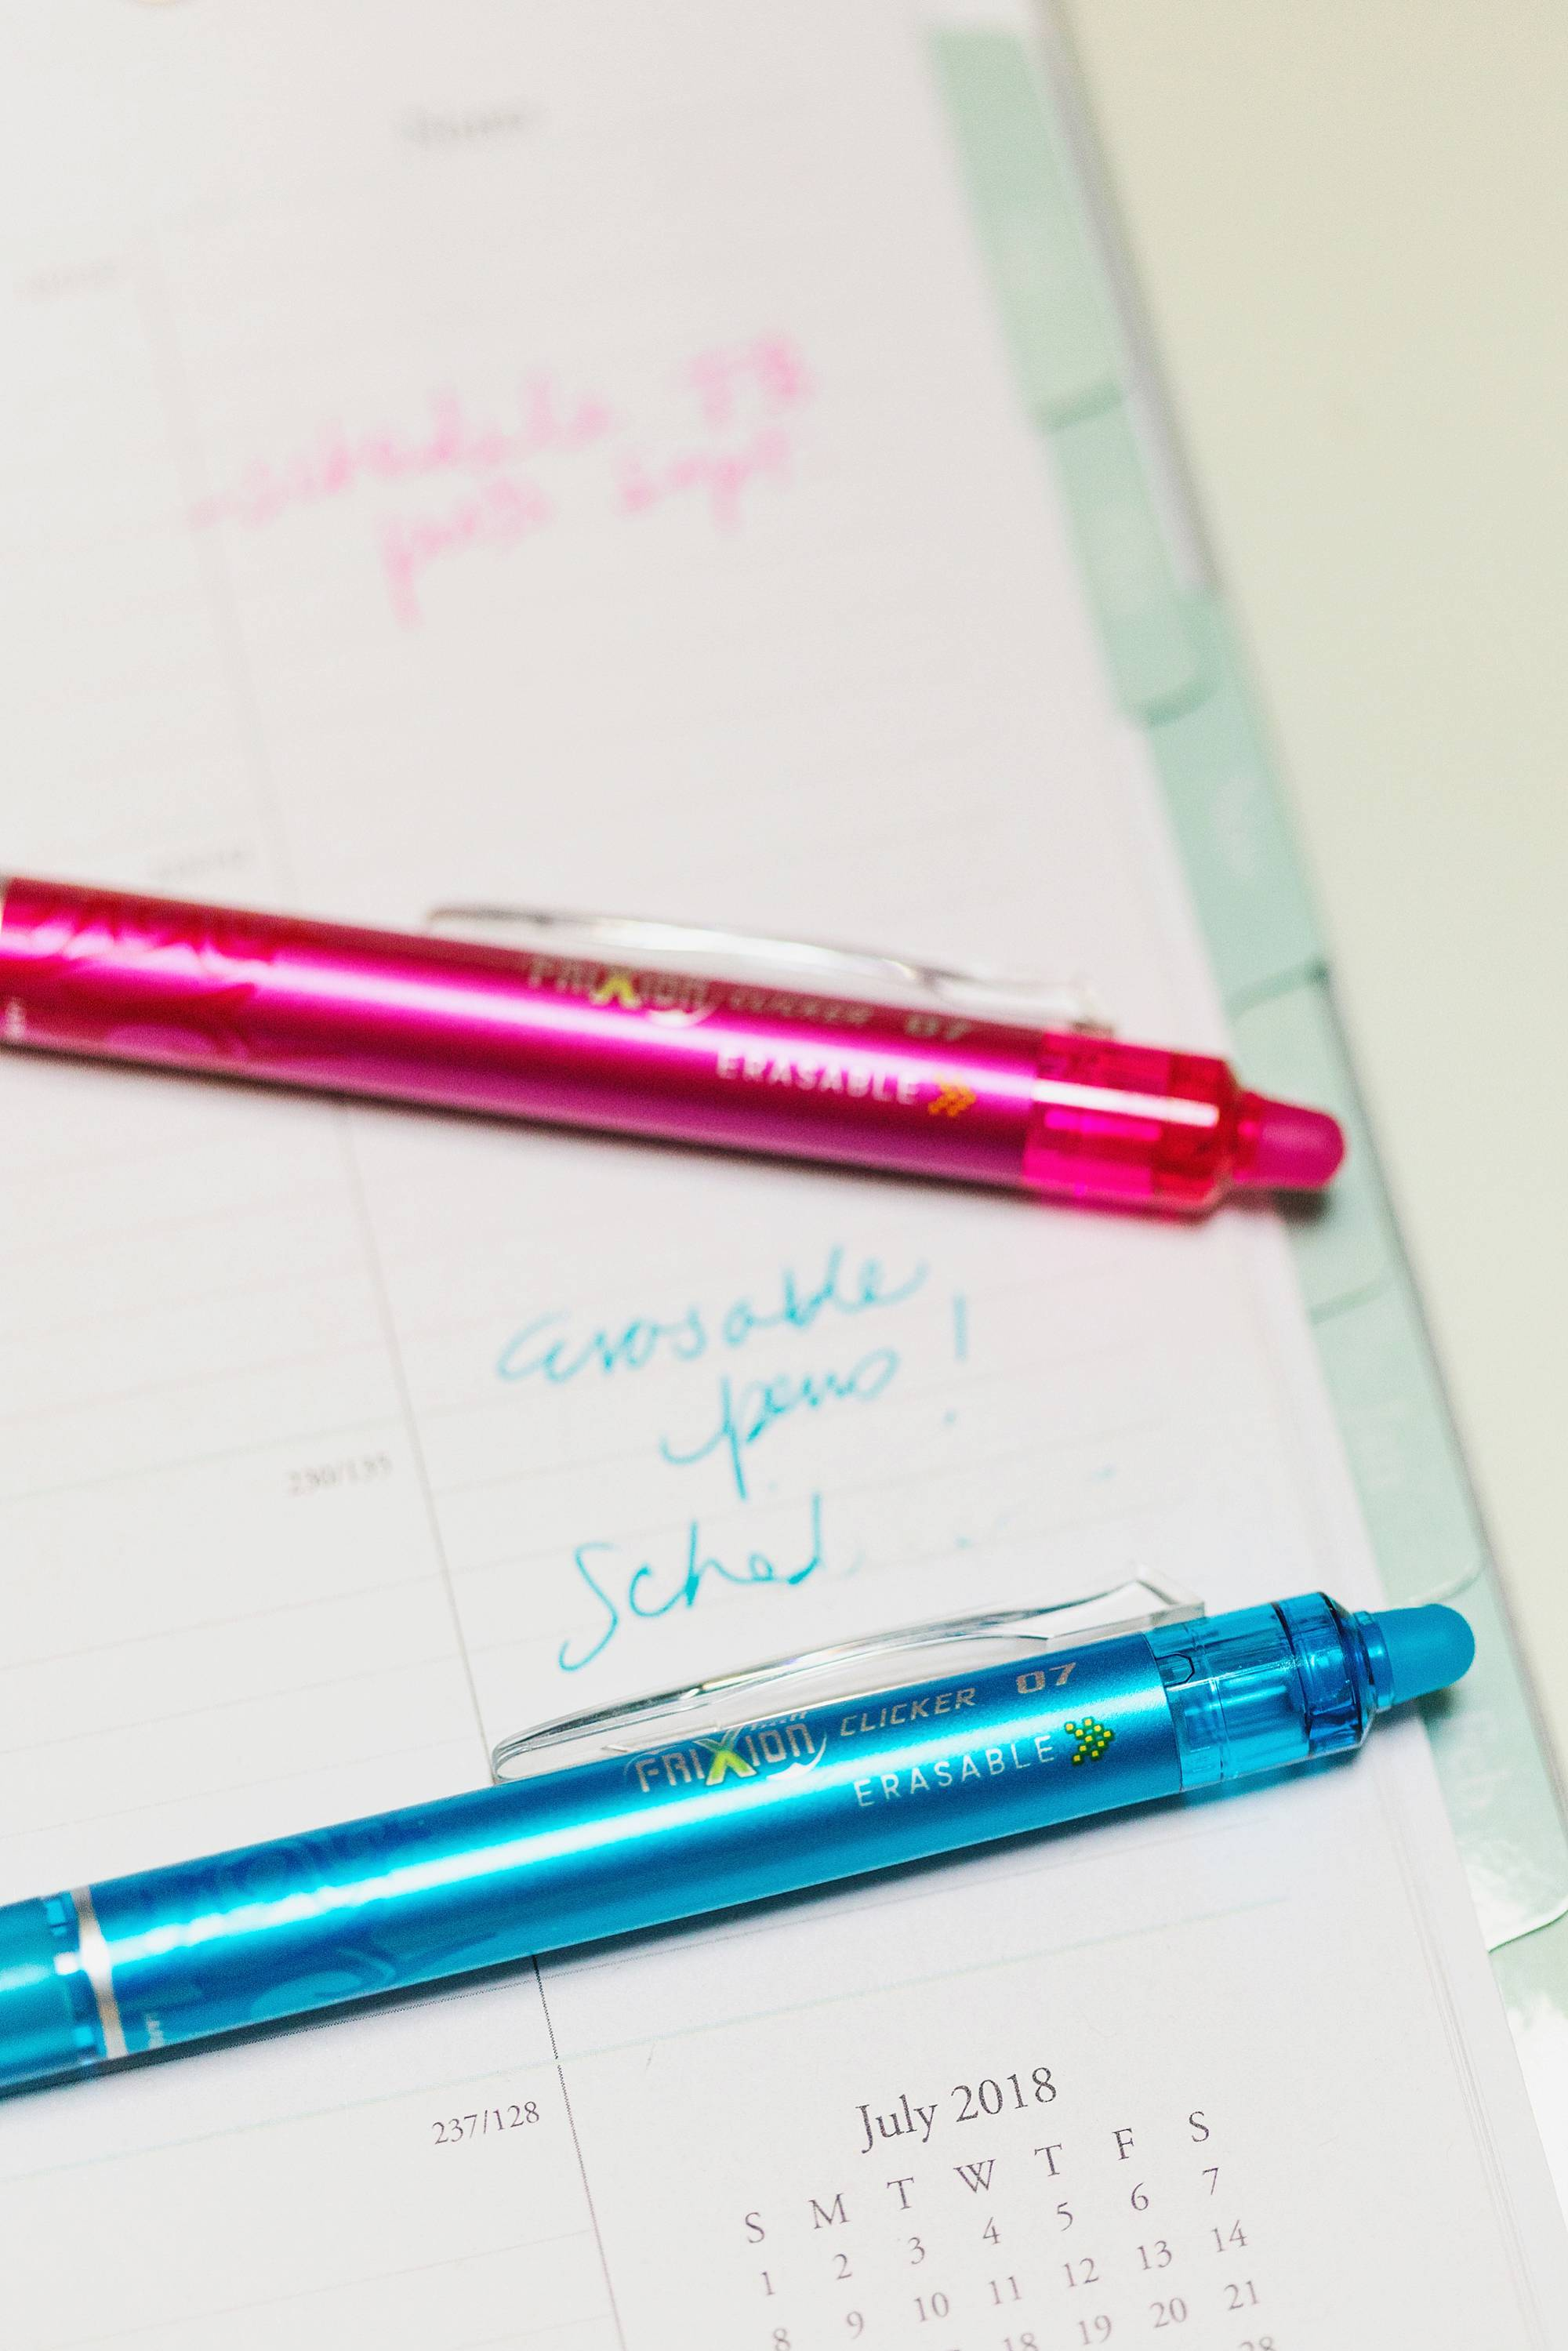 Erasable pens gel and colored great for writing down plans and able to erase them too